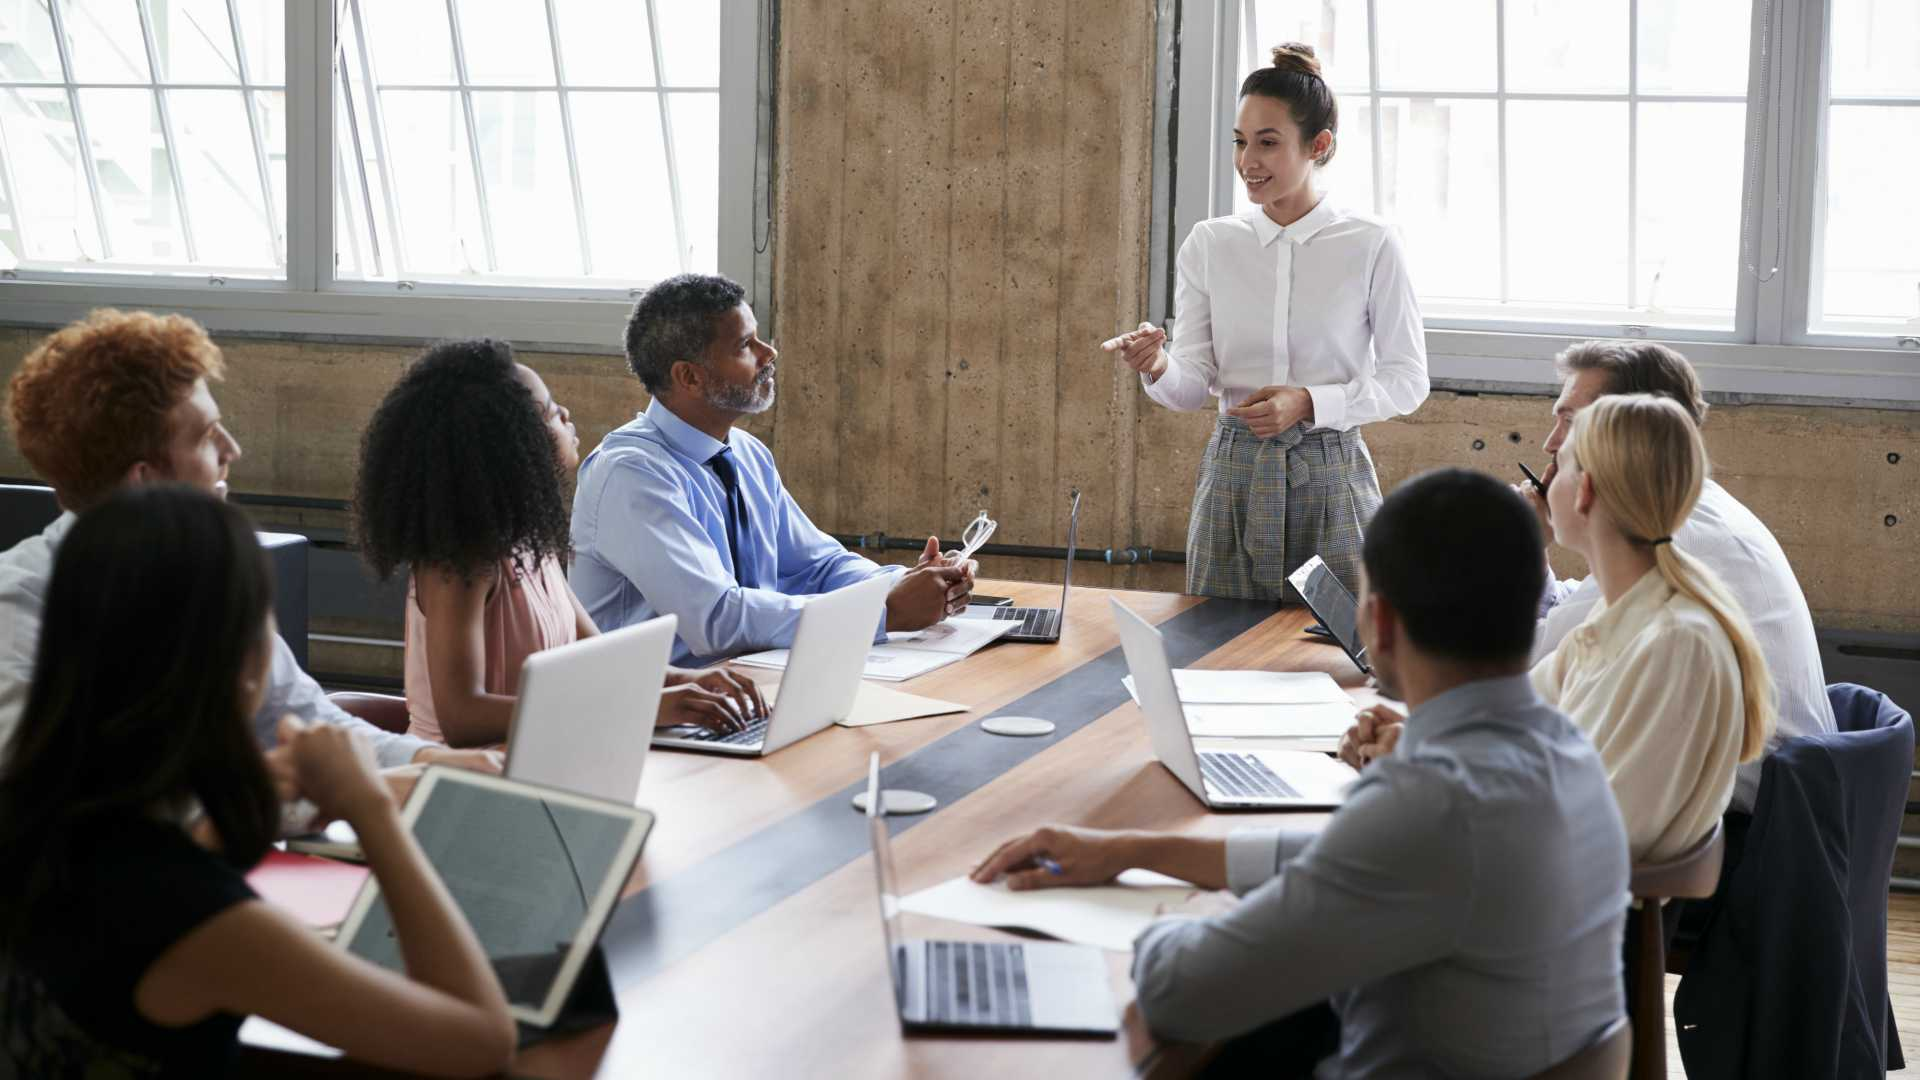 Seven Effective Leadership Skills to Manage 21st Century Workforces